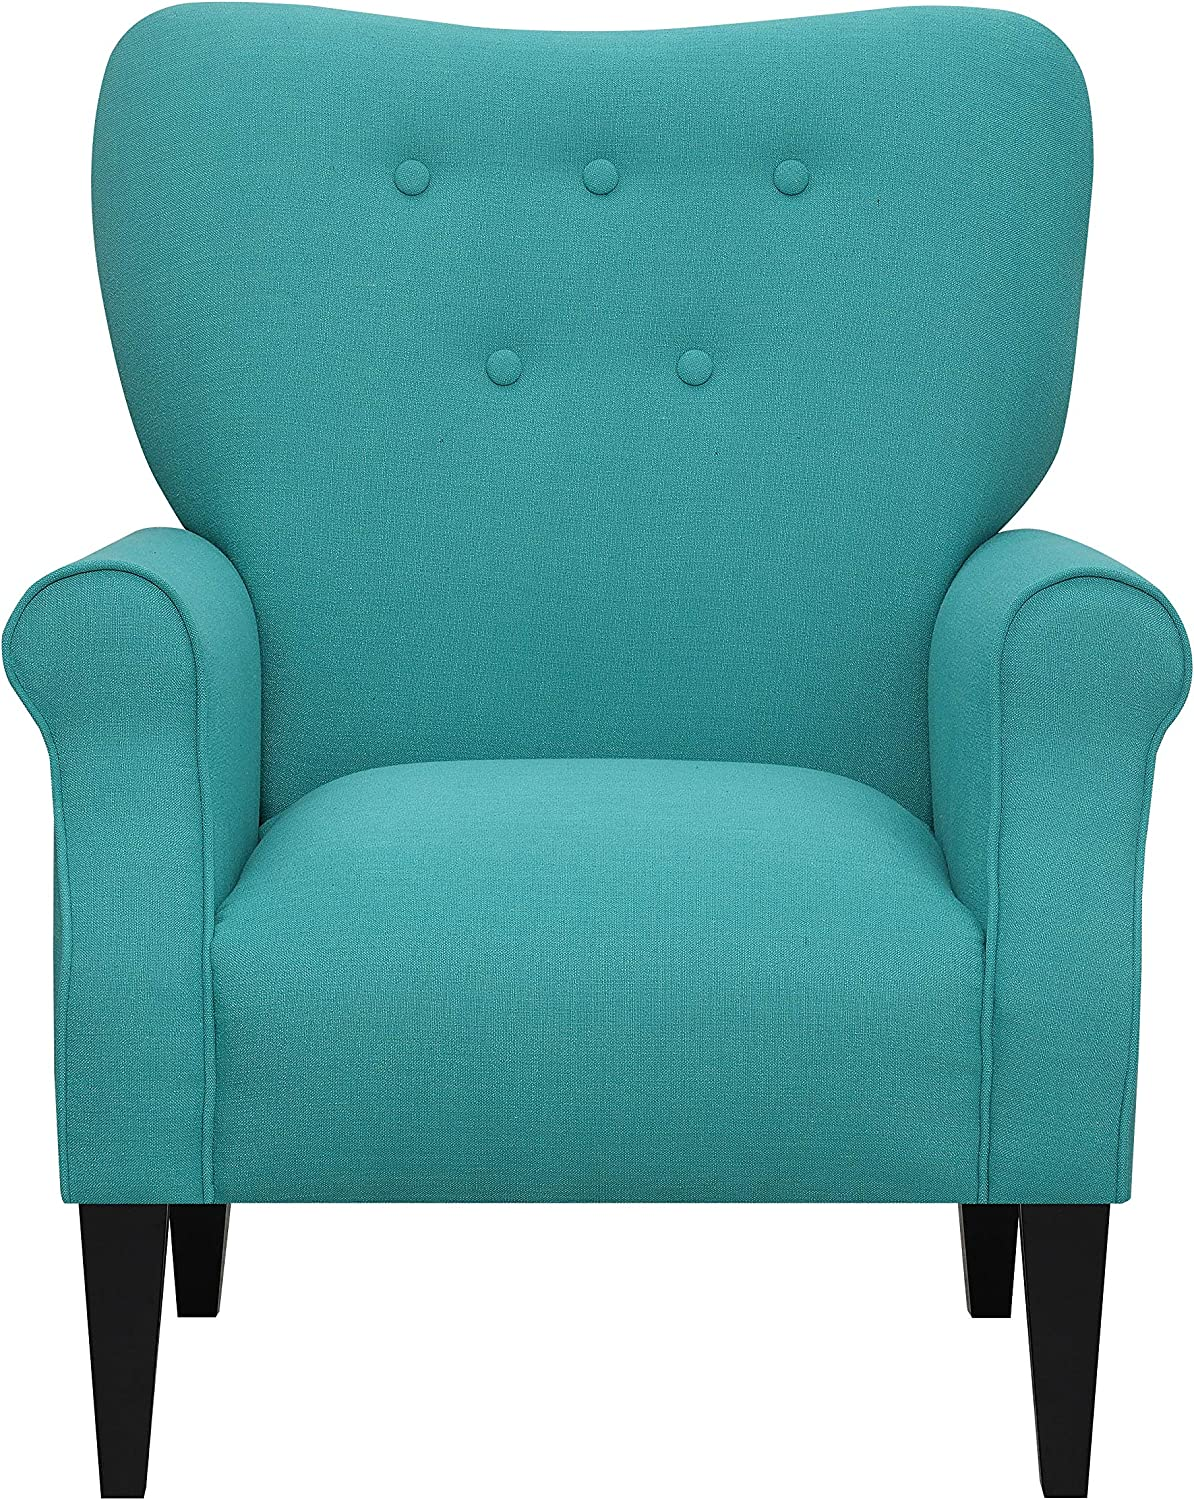 Emerald Home Furnishings Lydia Accent Chair, Mallard